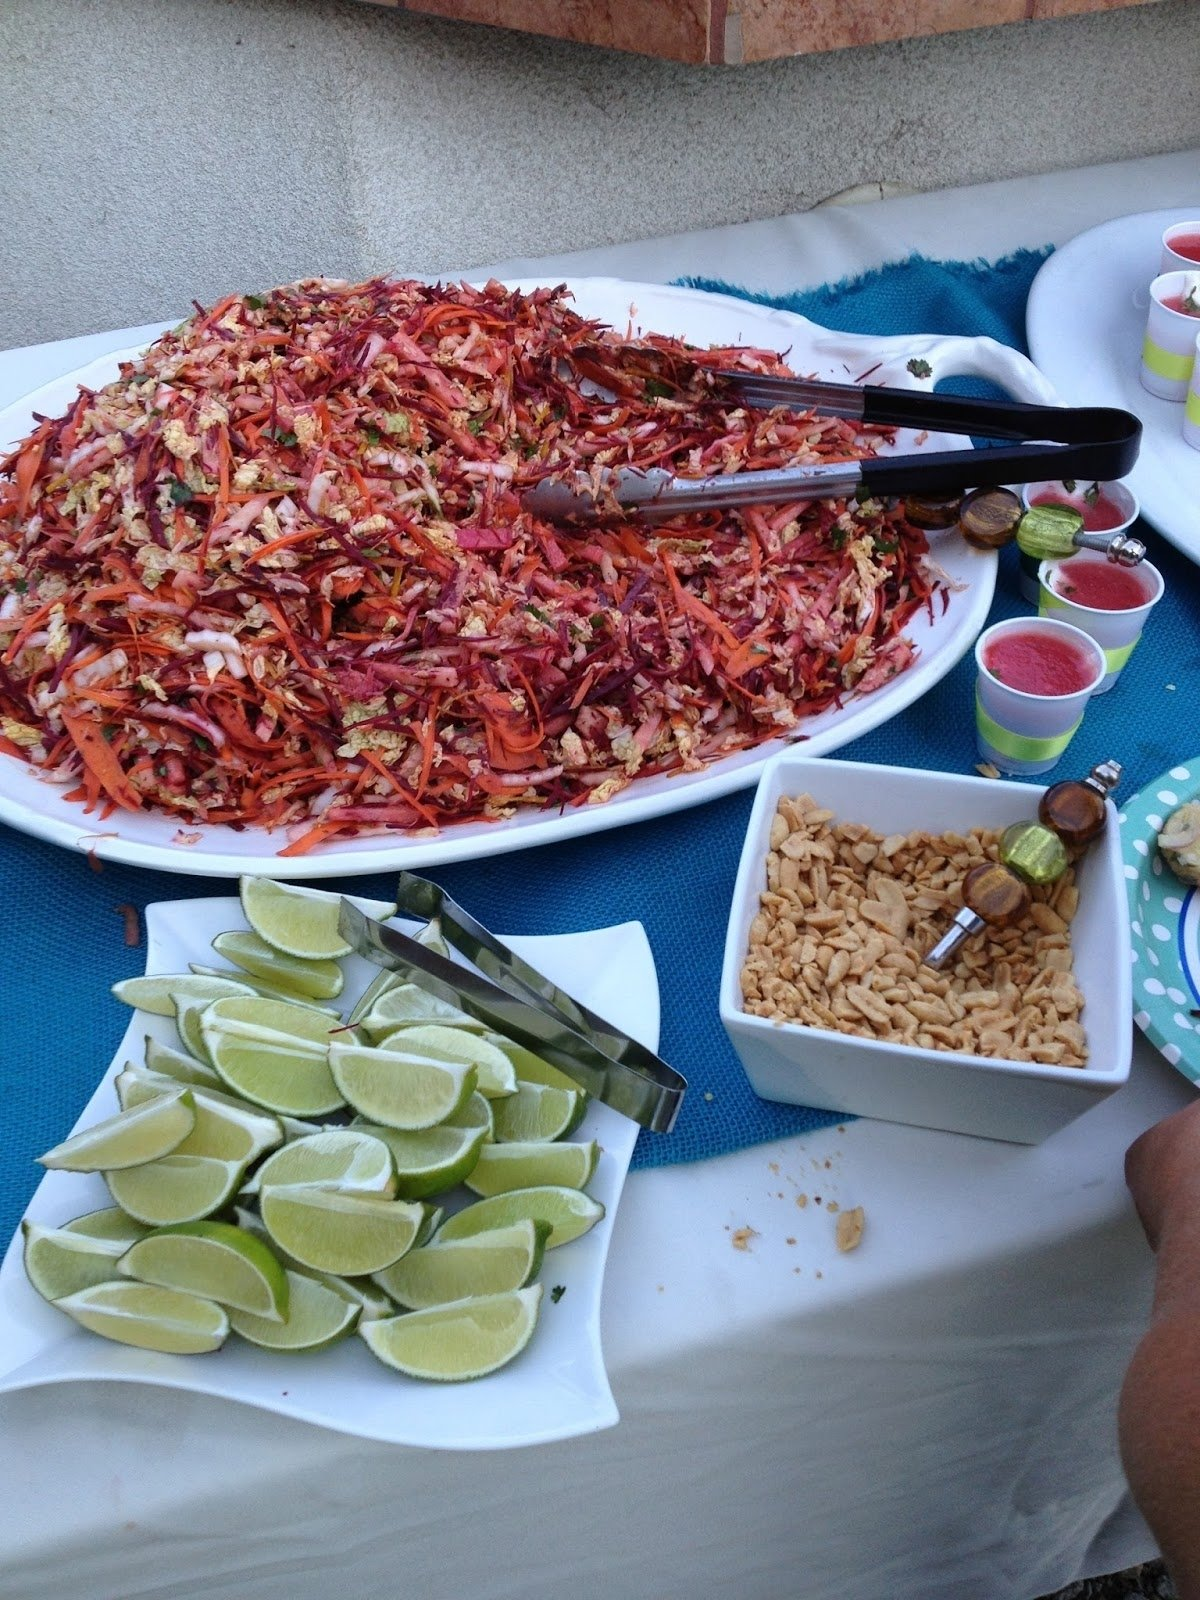 10 Most Popular Food Ideas For Large Parties clean and light summer party food for moms 60th birthday maureen 2020